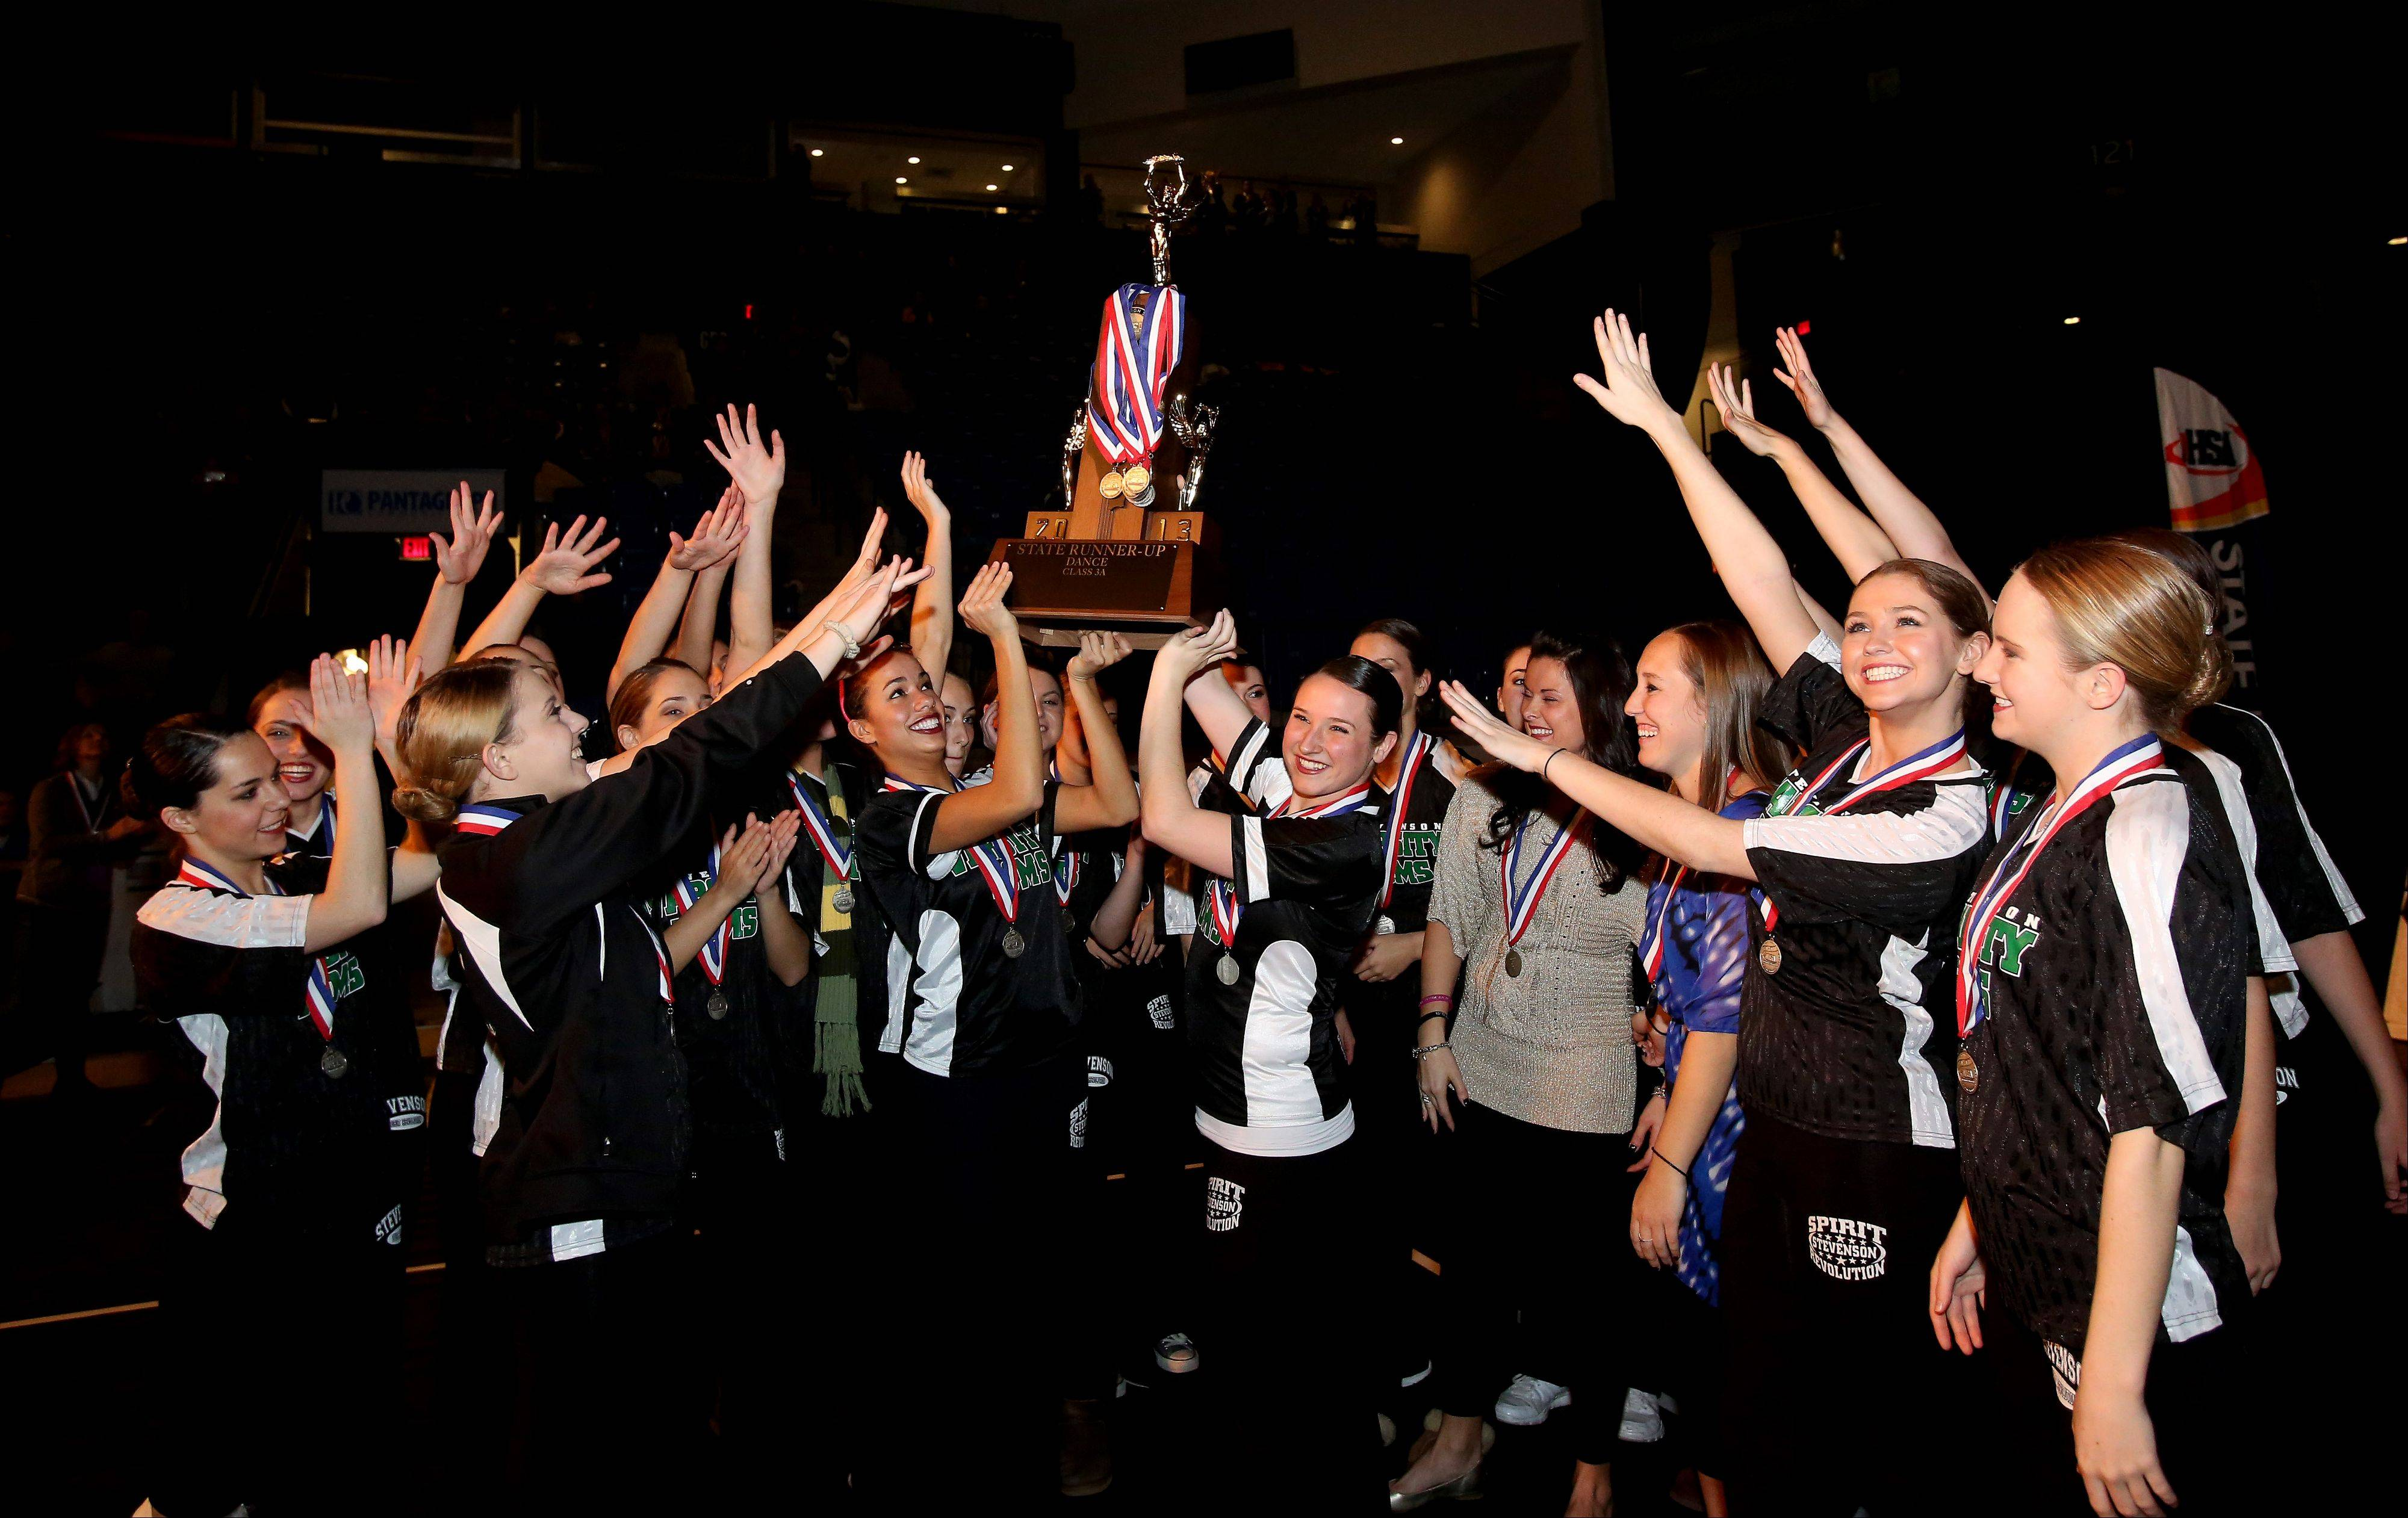 Stevenson HIgh School holds up its second place trophy in the 3A division of the Competitive Dance State Finals on Saturday in Bloomington.